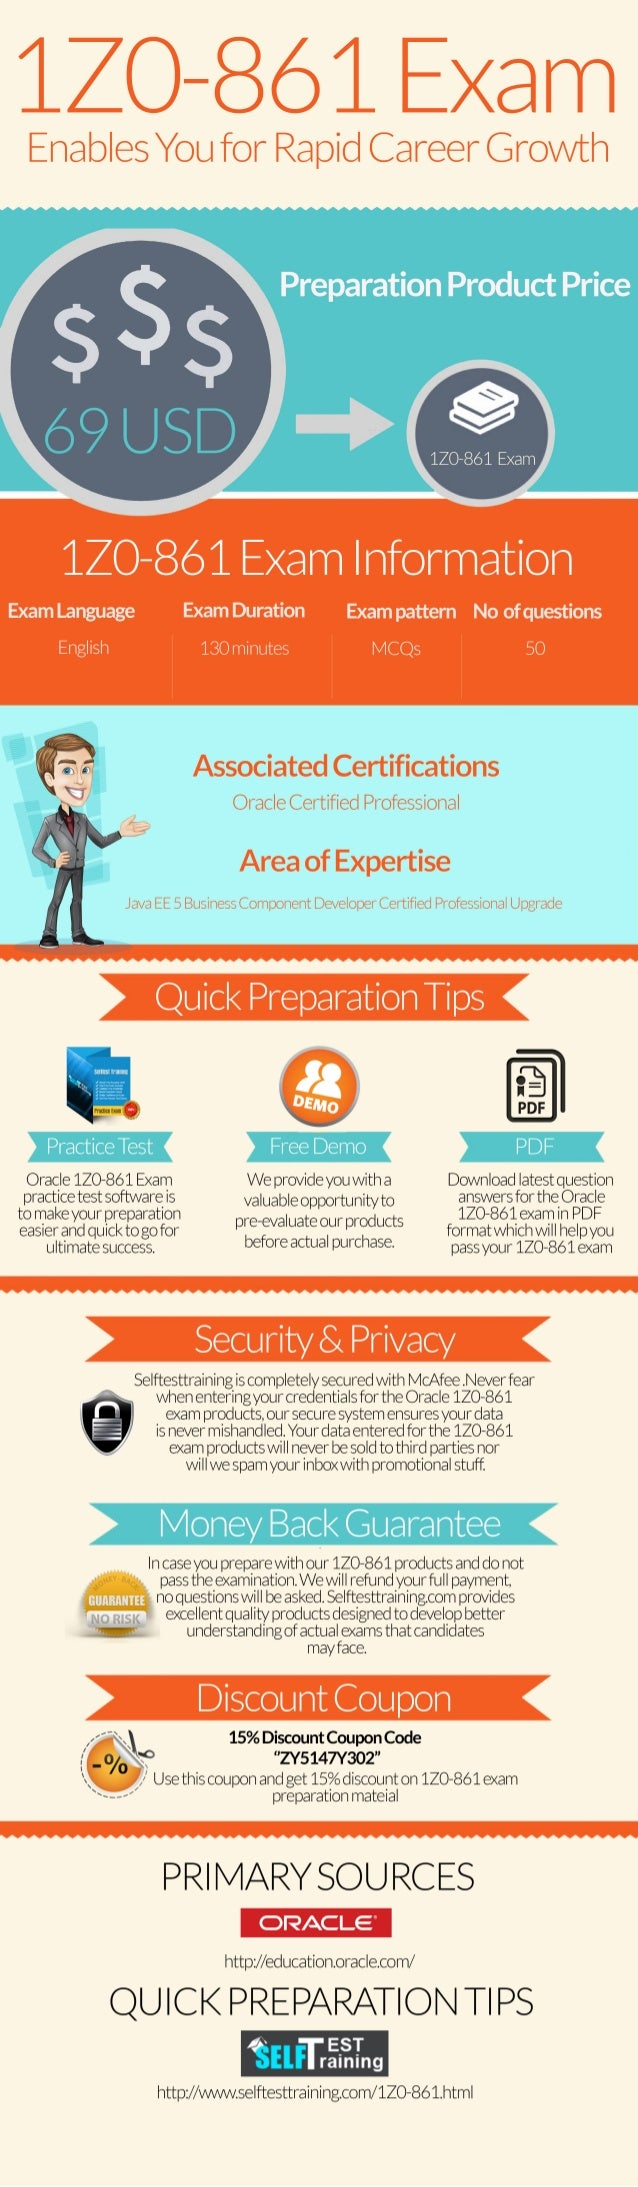 1Z0-861 Practice Tests & 1Z0-861 Real Exam Questions [infographic]